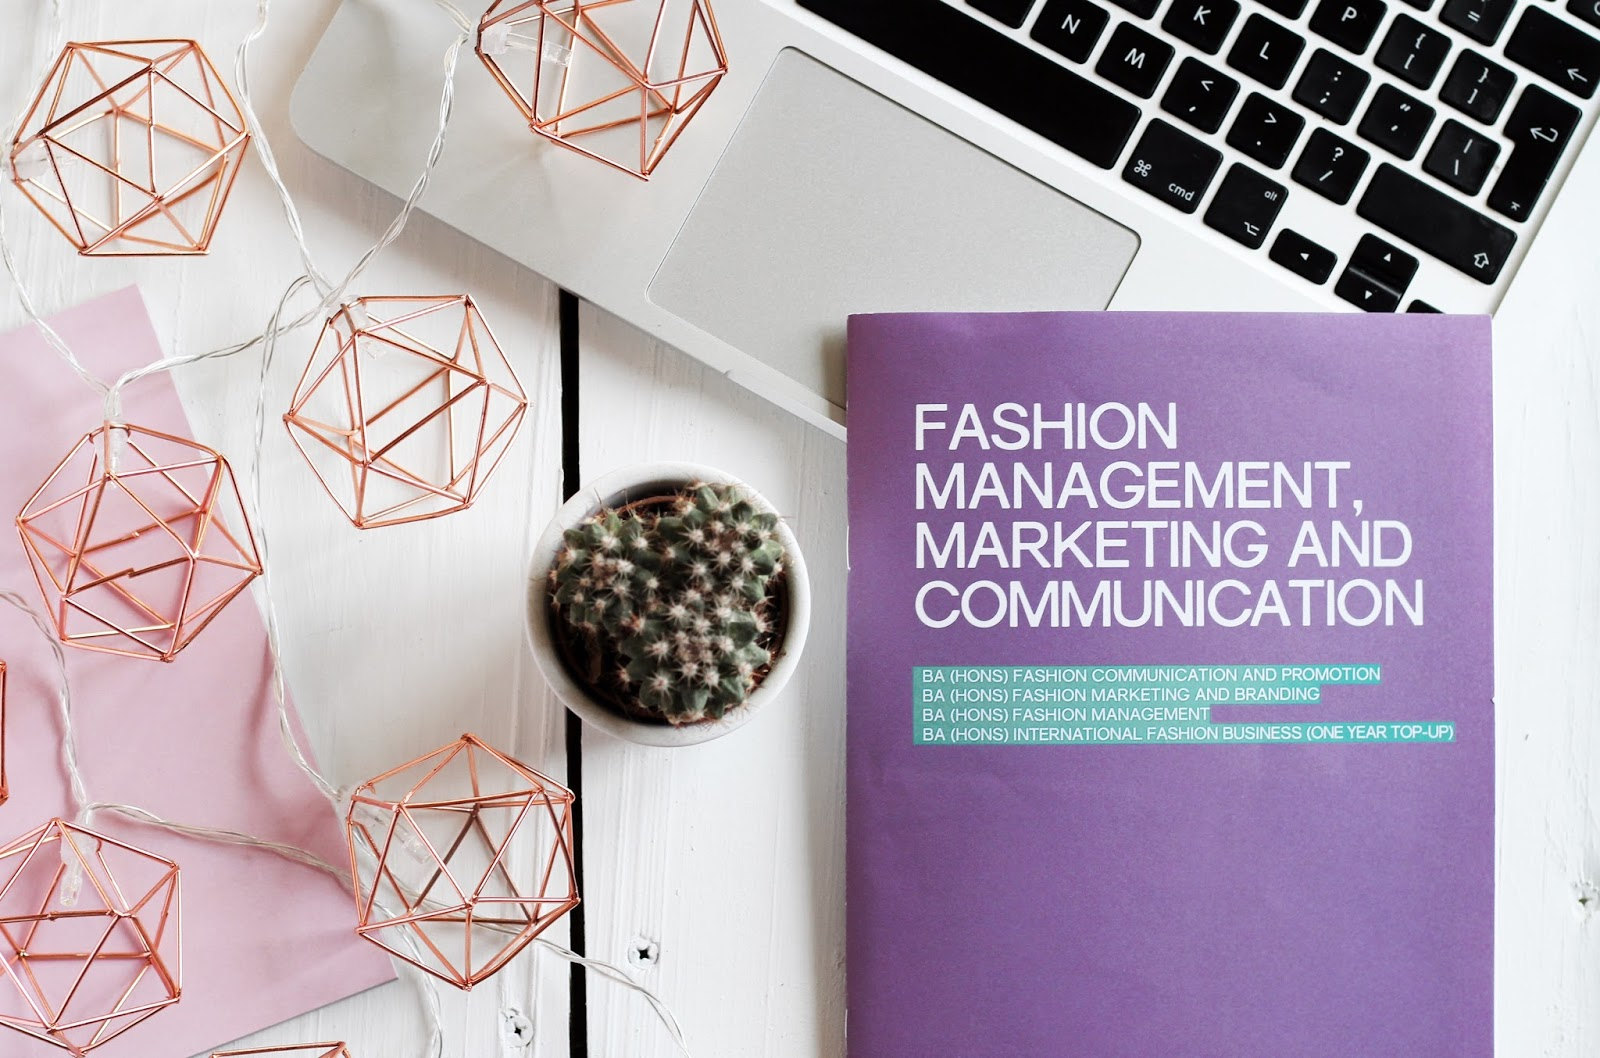 fashion as communication essay